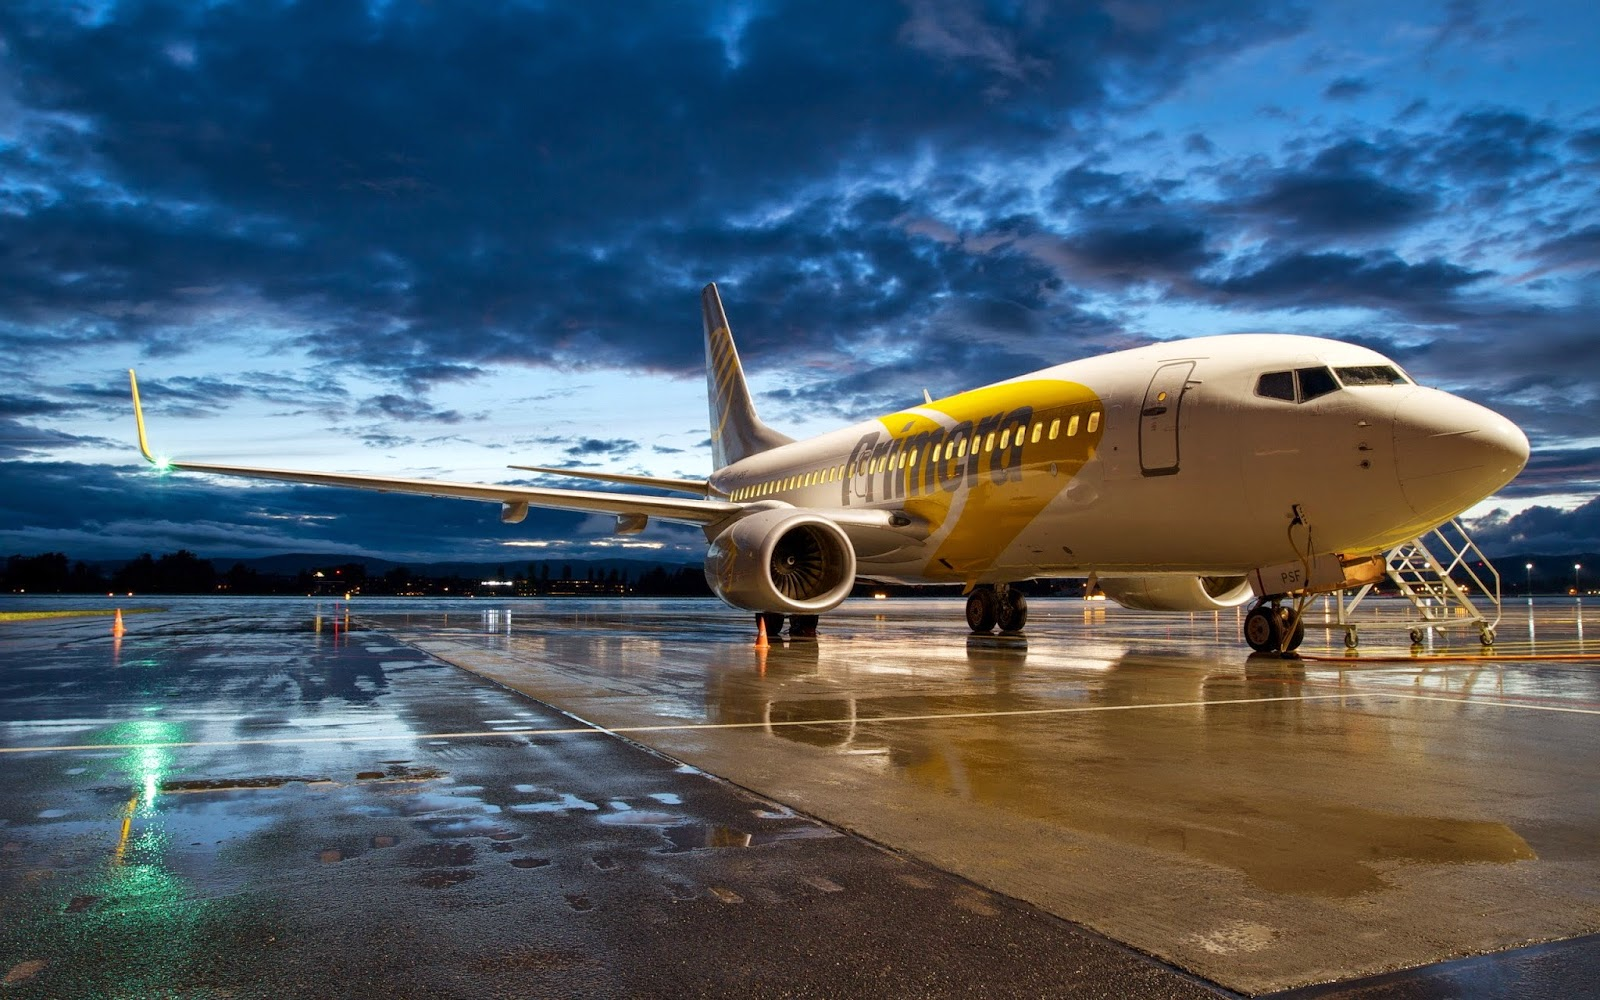 boeing-737-aircraft-wallpaper-2560x1600